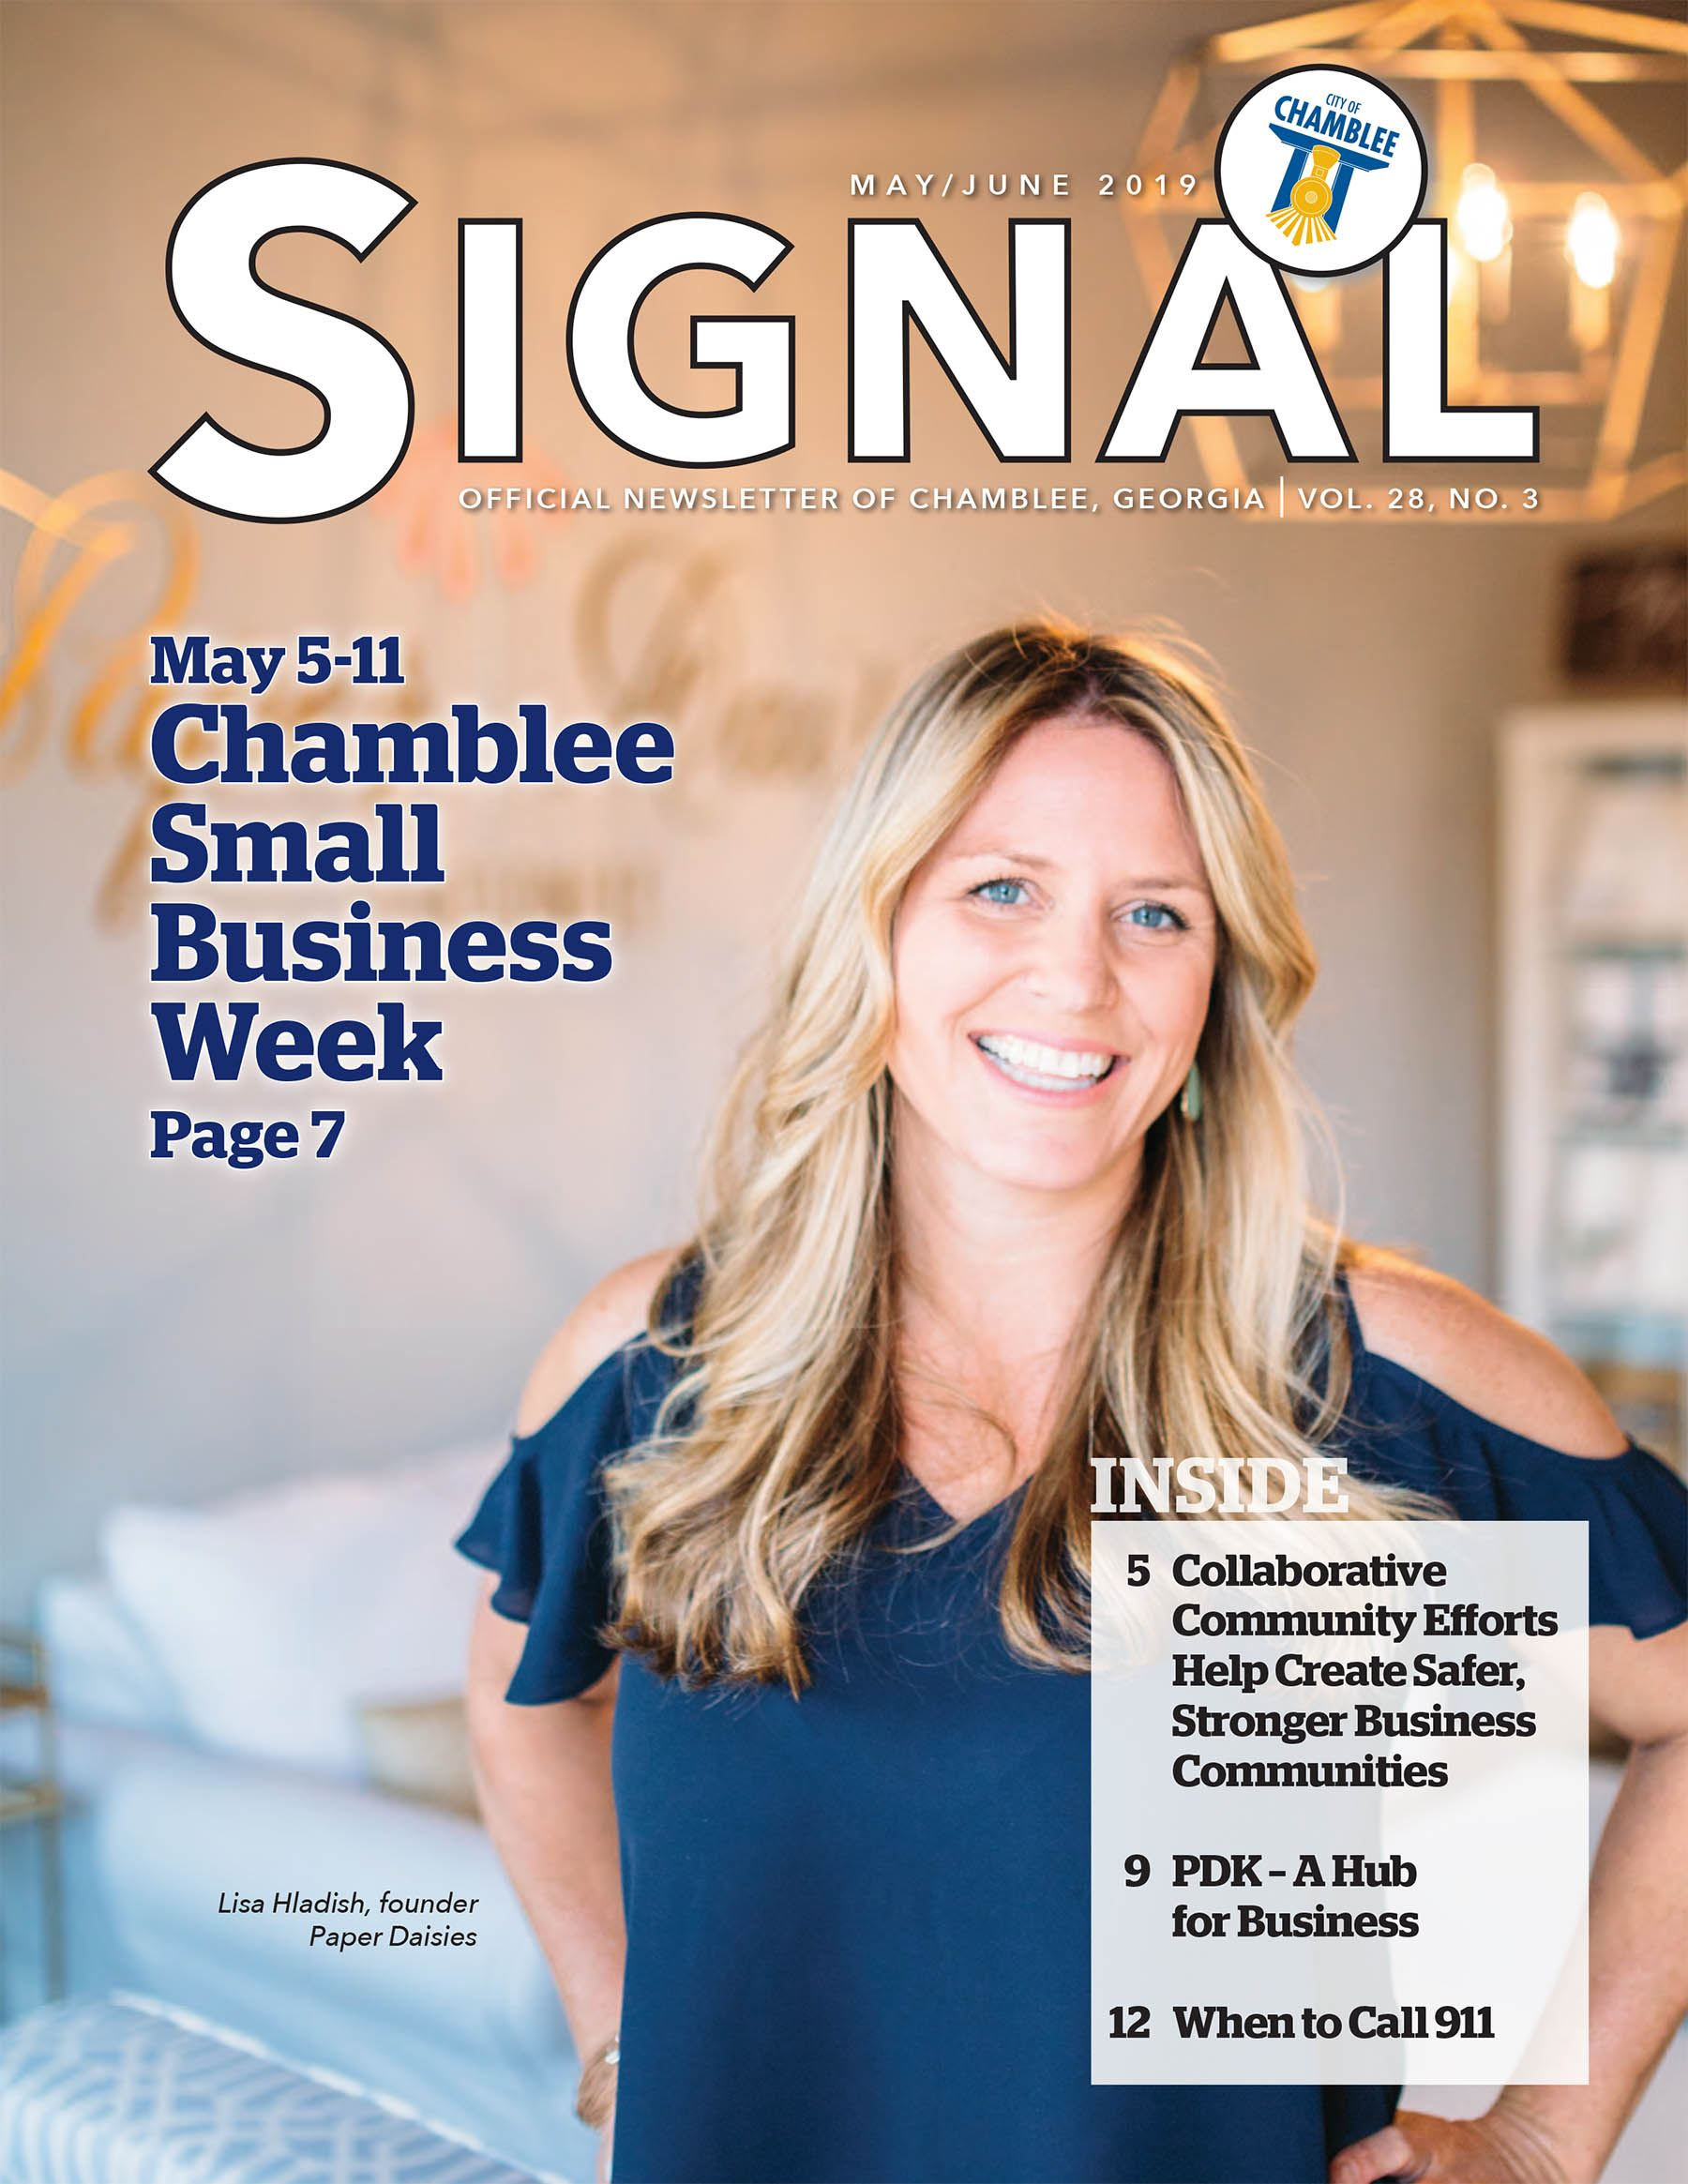 May-June Signal Cover Paper Daisies Founder